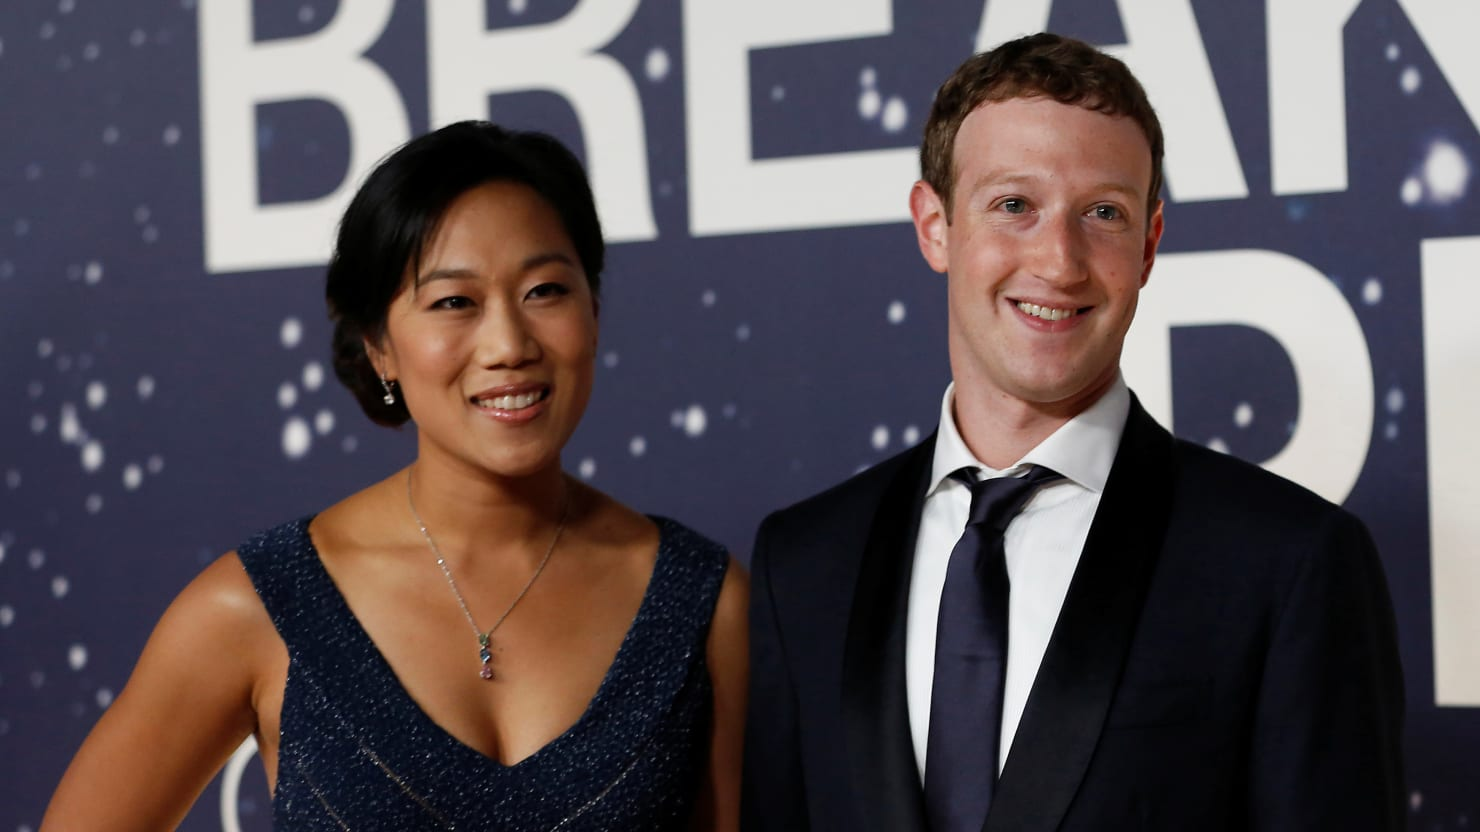 Mark Zuckerberg and Wife Priscilla Chan's Private Staff Roiled by Claims of Abuse: Report